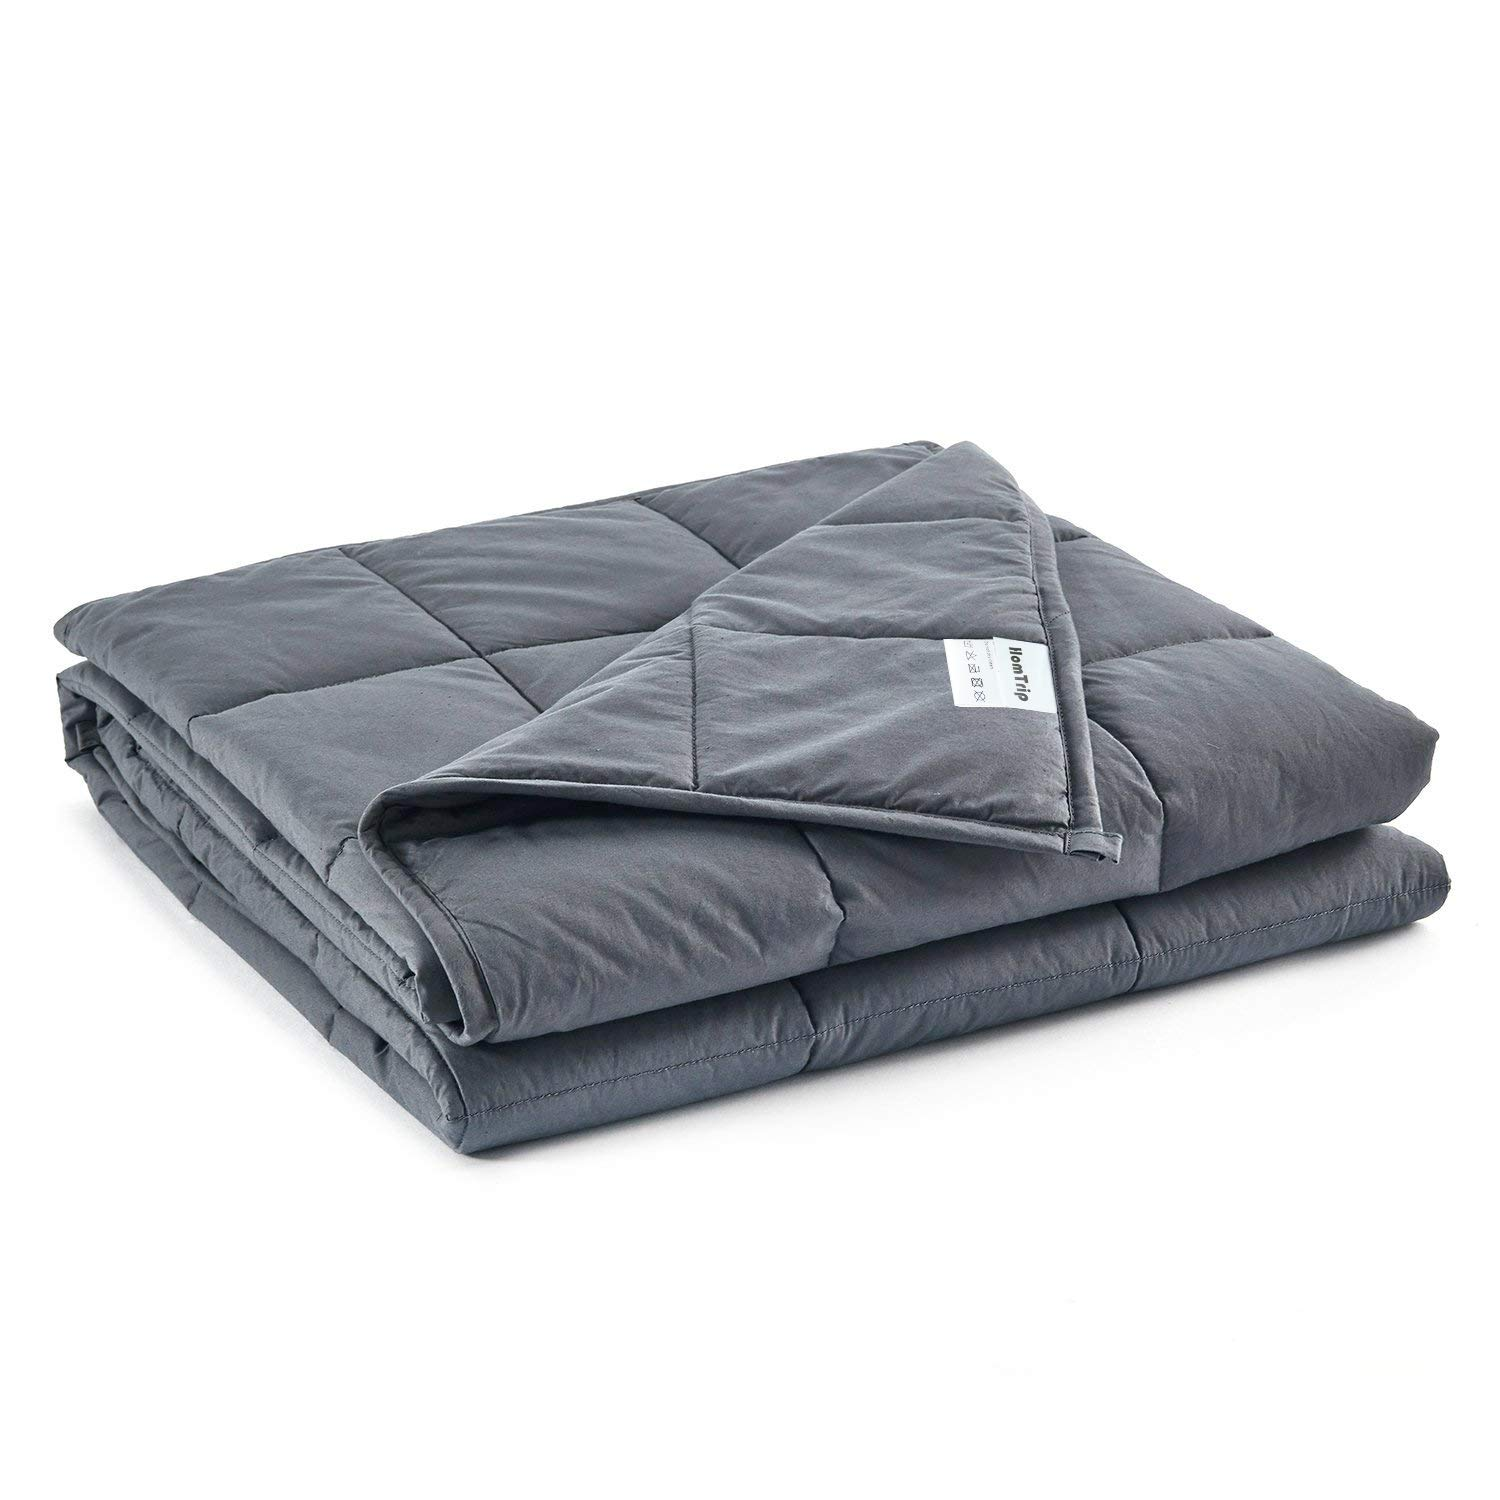 Weighted Blanket 5lbs 36''x48'' - Heavy Blanket with 100% Cotton and Glass Beads, Ideal for Youth & Kids Between 40 to 60 lbs by HomTrip